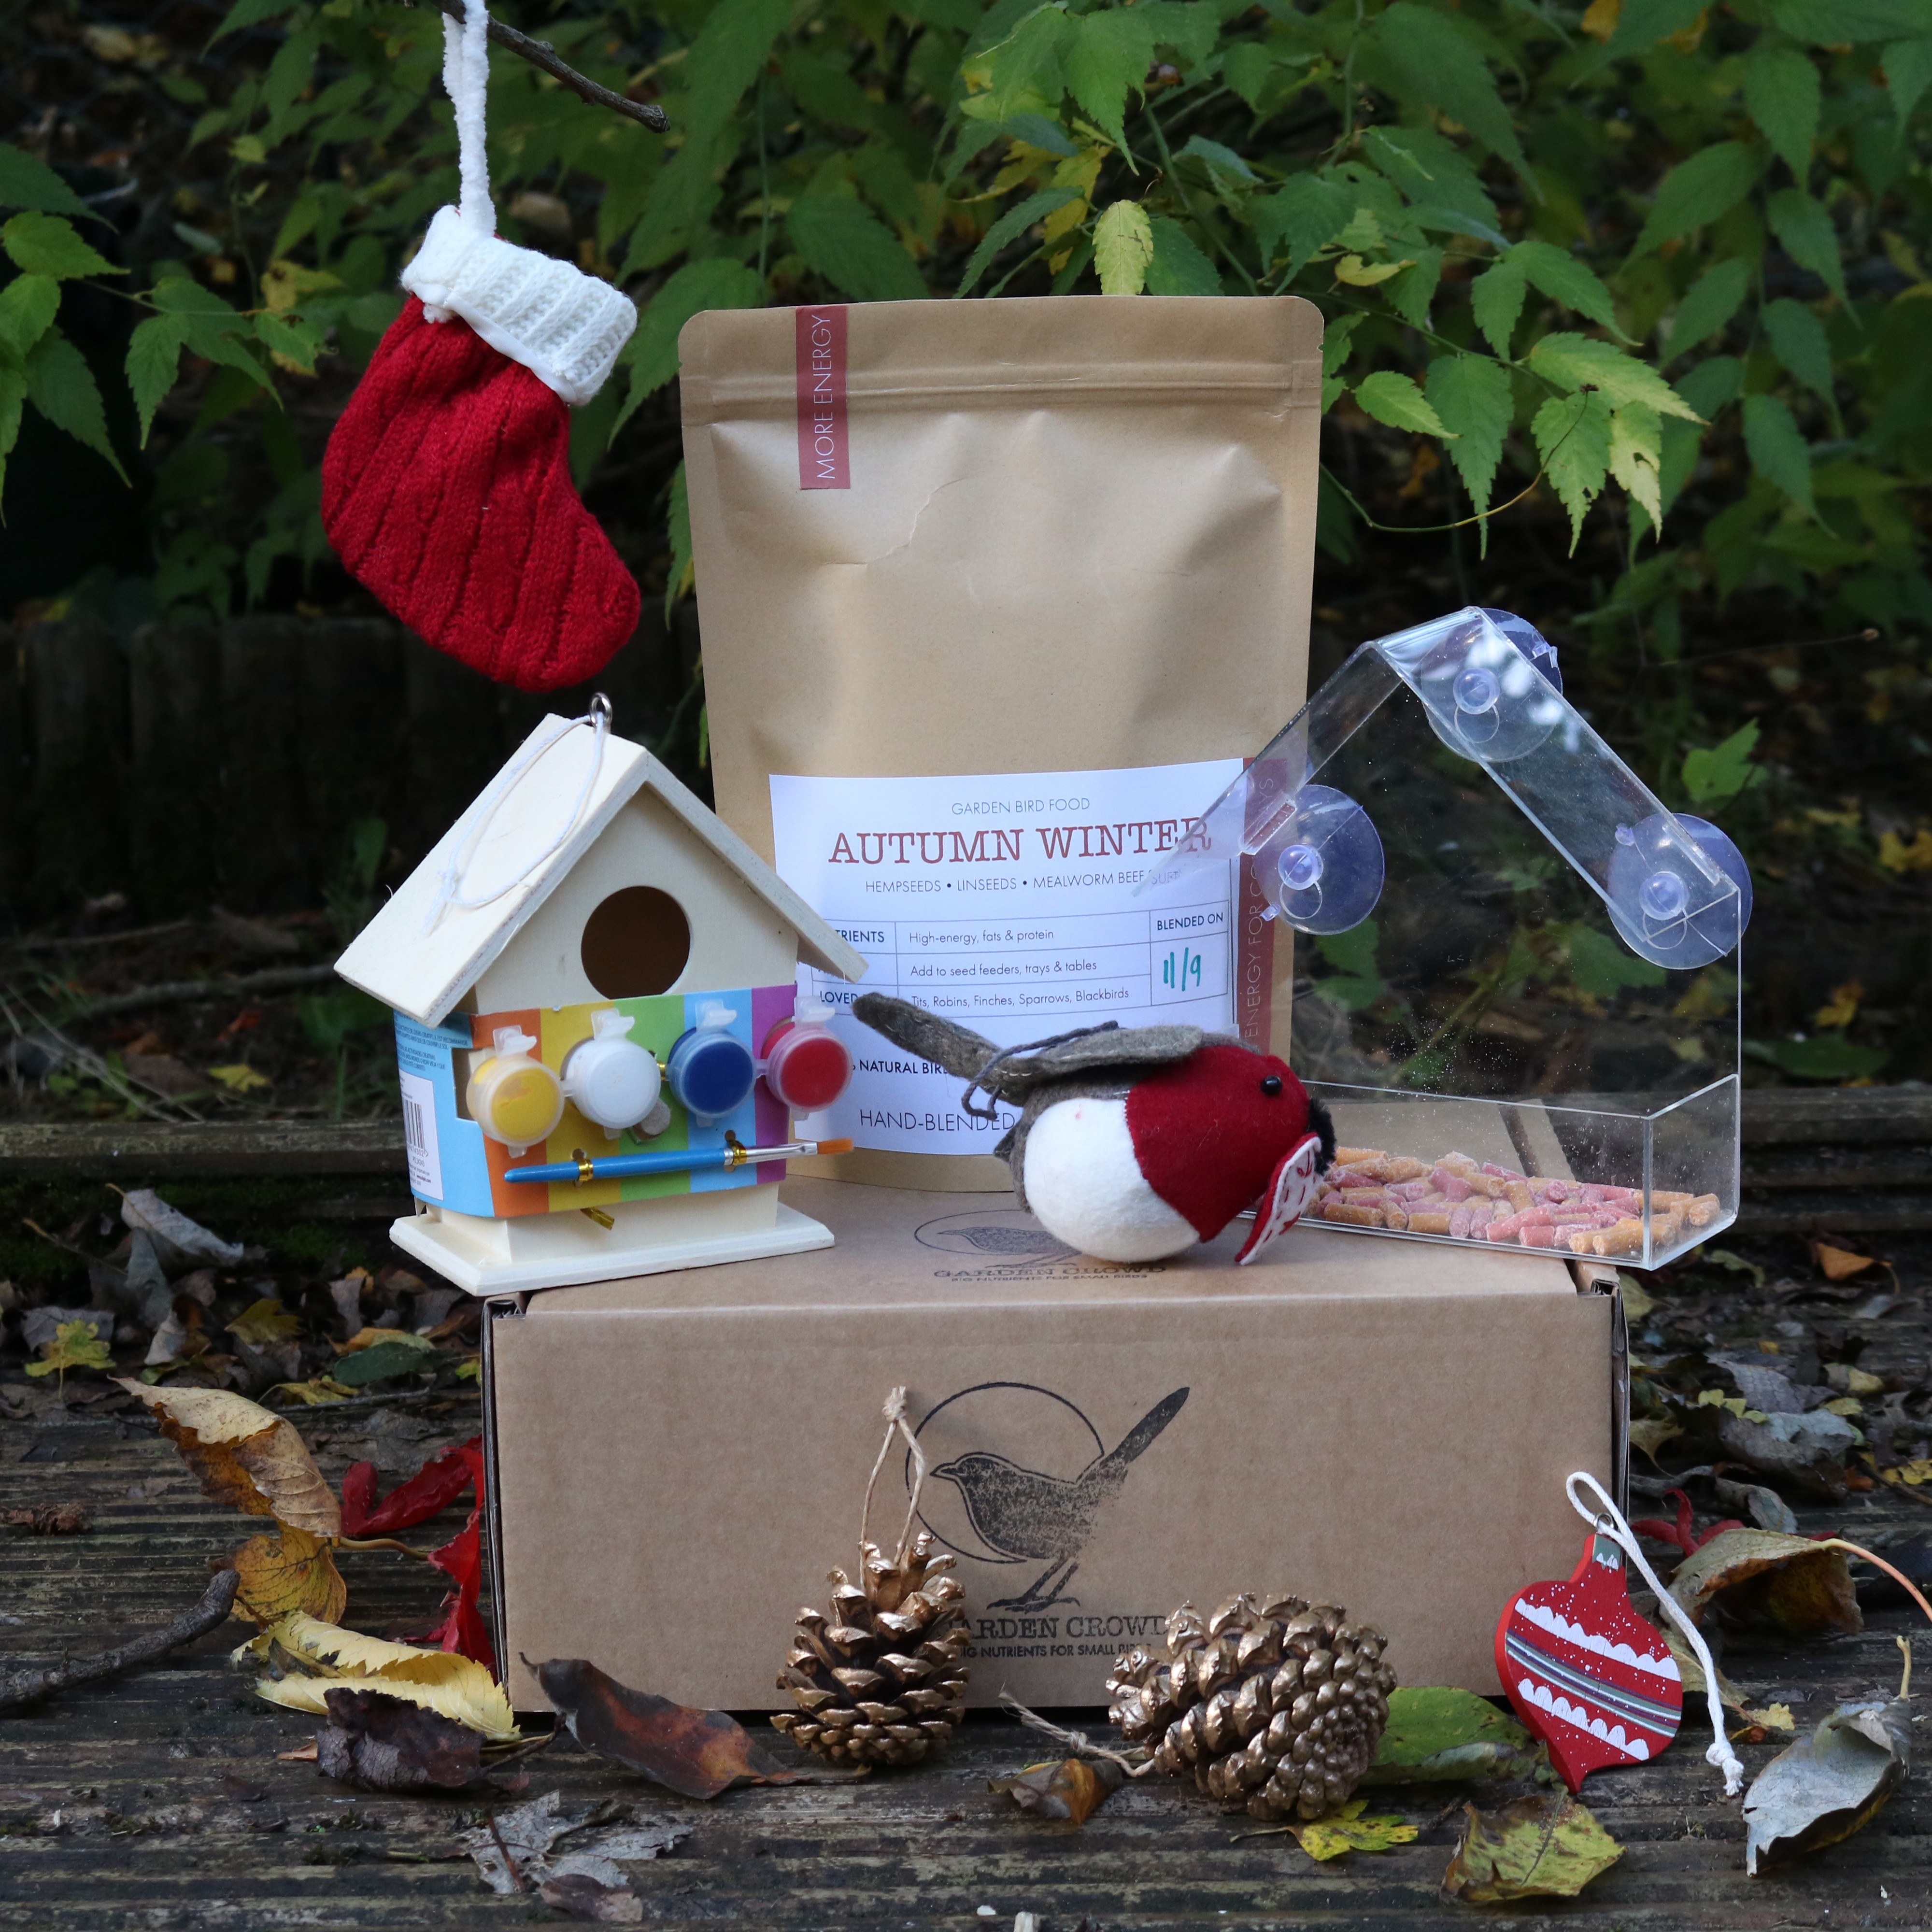 Things For Christmas.Get Ready For Christmas With Our Bird Lovers Gift Guide 2019